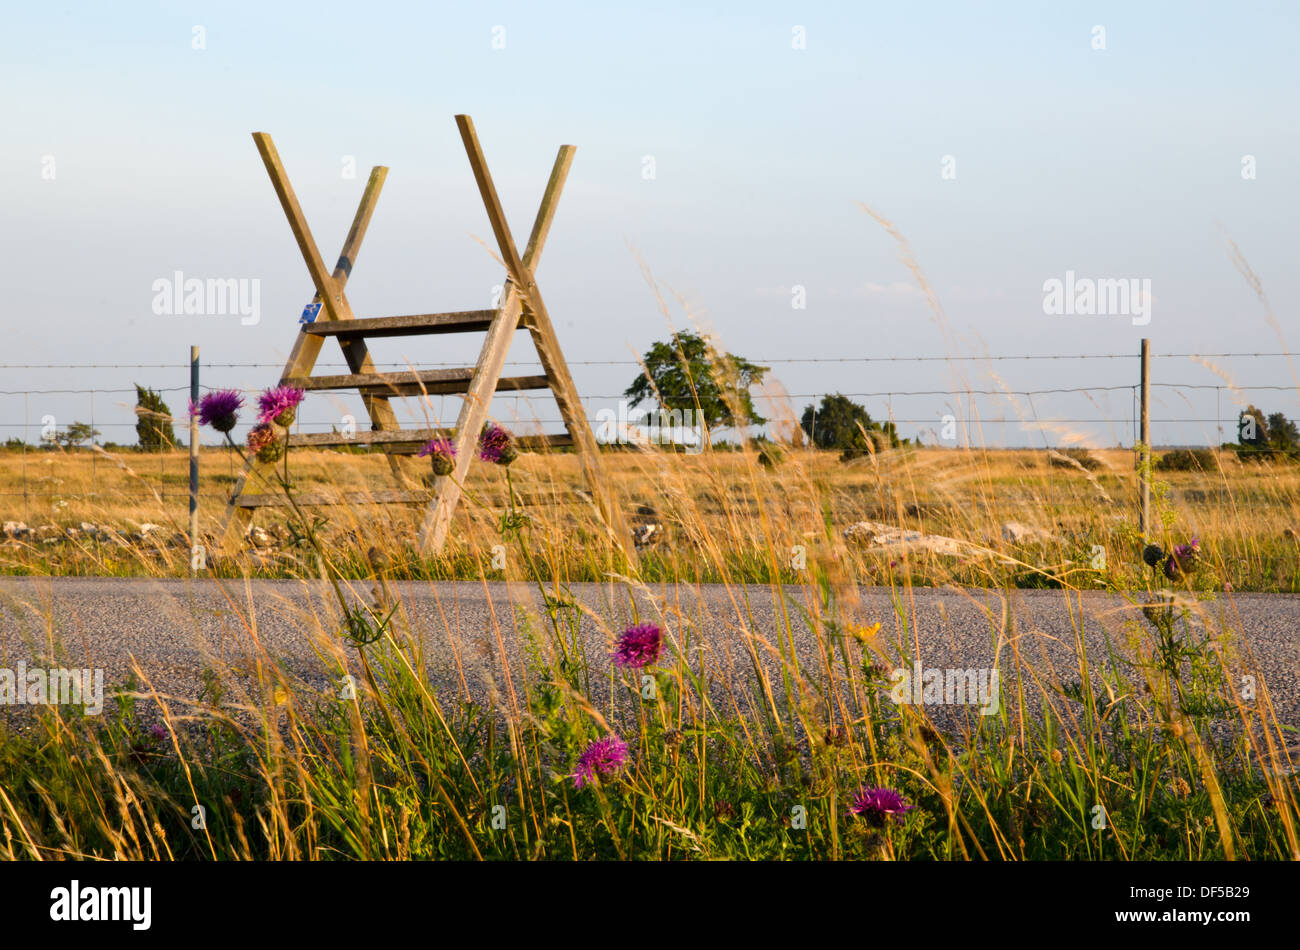 Stile over barb wire with flowers in foreground - Stock Image